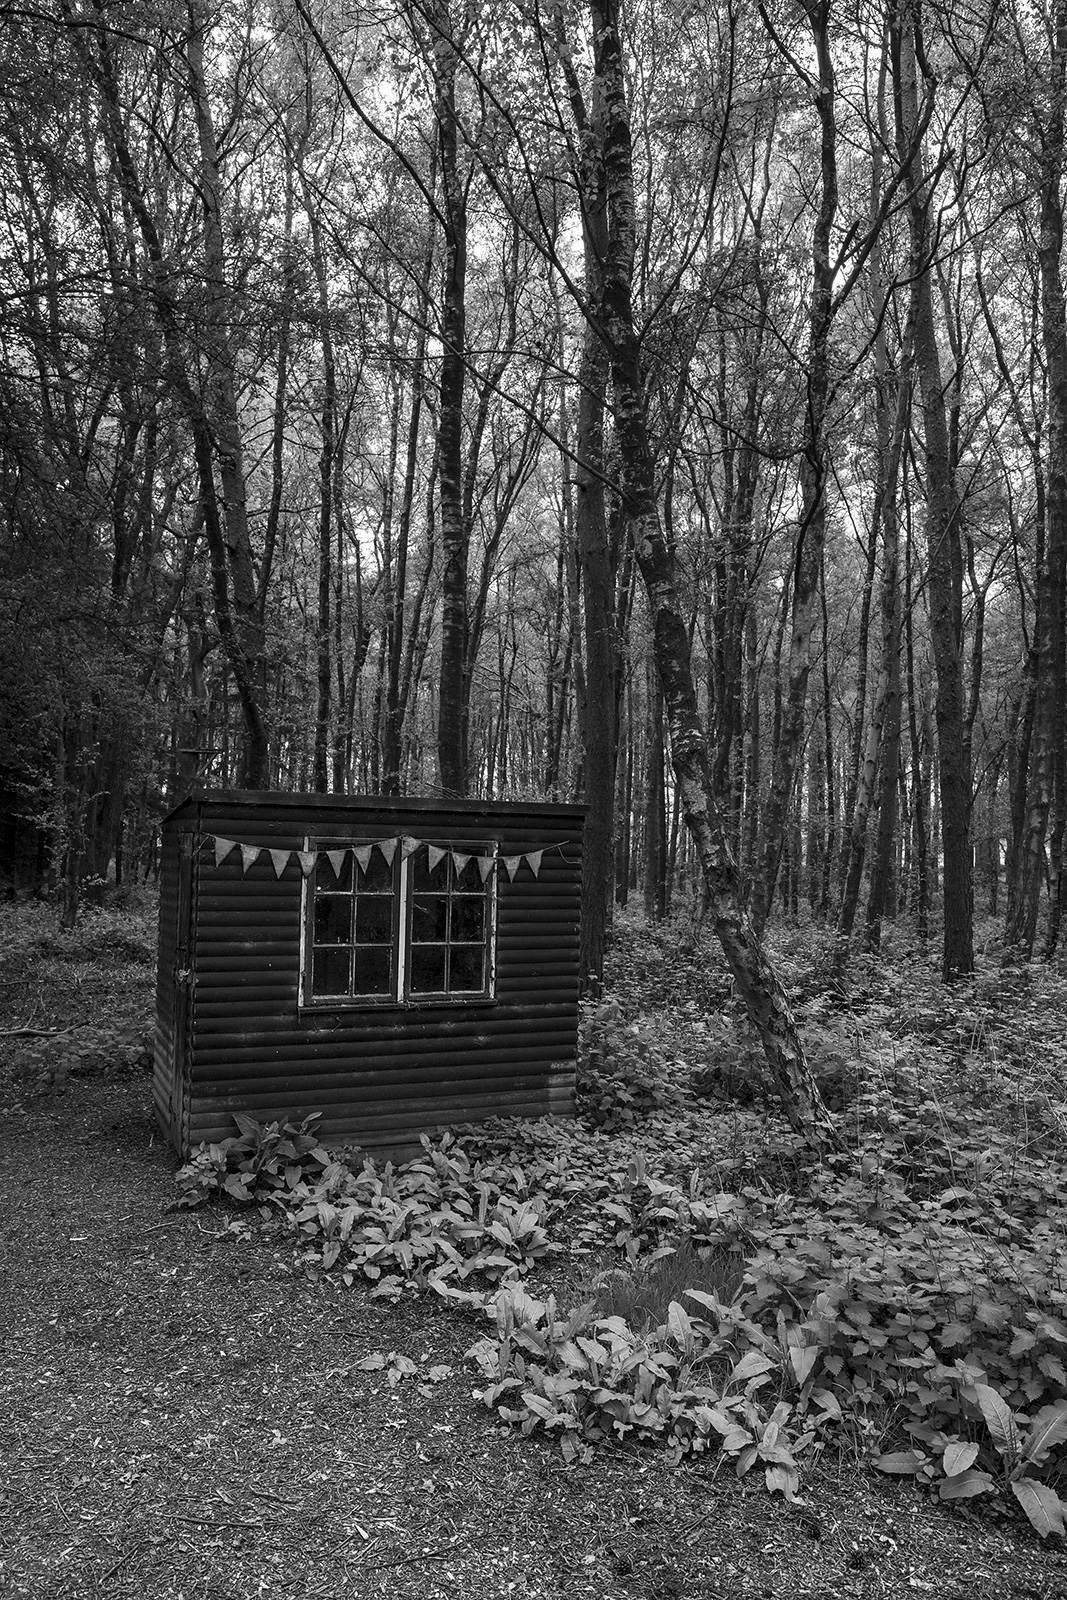 small weathered shed with bunting in woodland, black and white portrait rural landscape Glynedbourne Wood East Sussex UK ©P. Maton 2019 eyeteeth.net